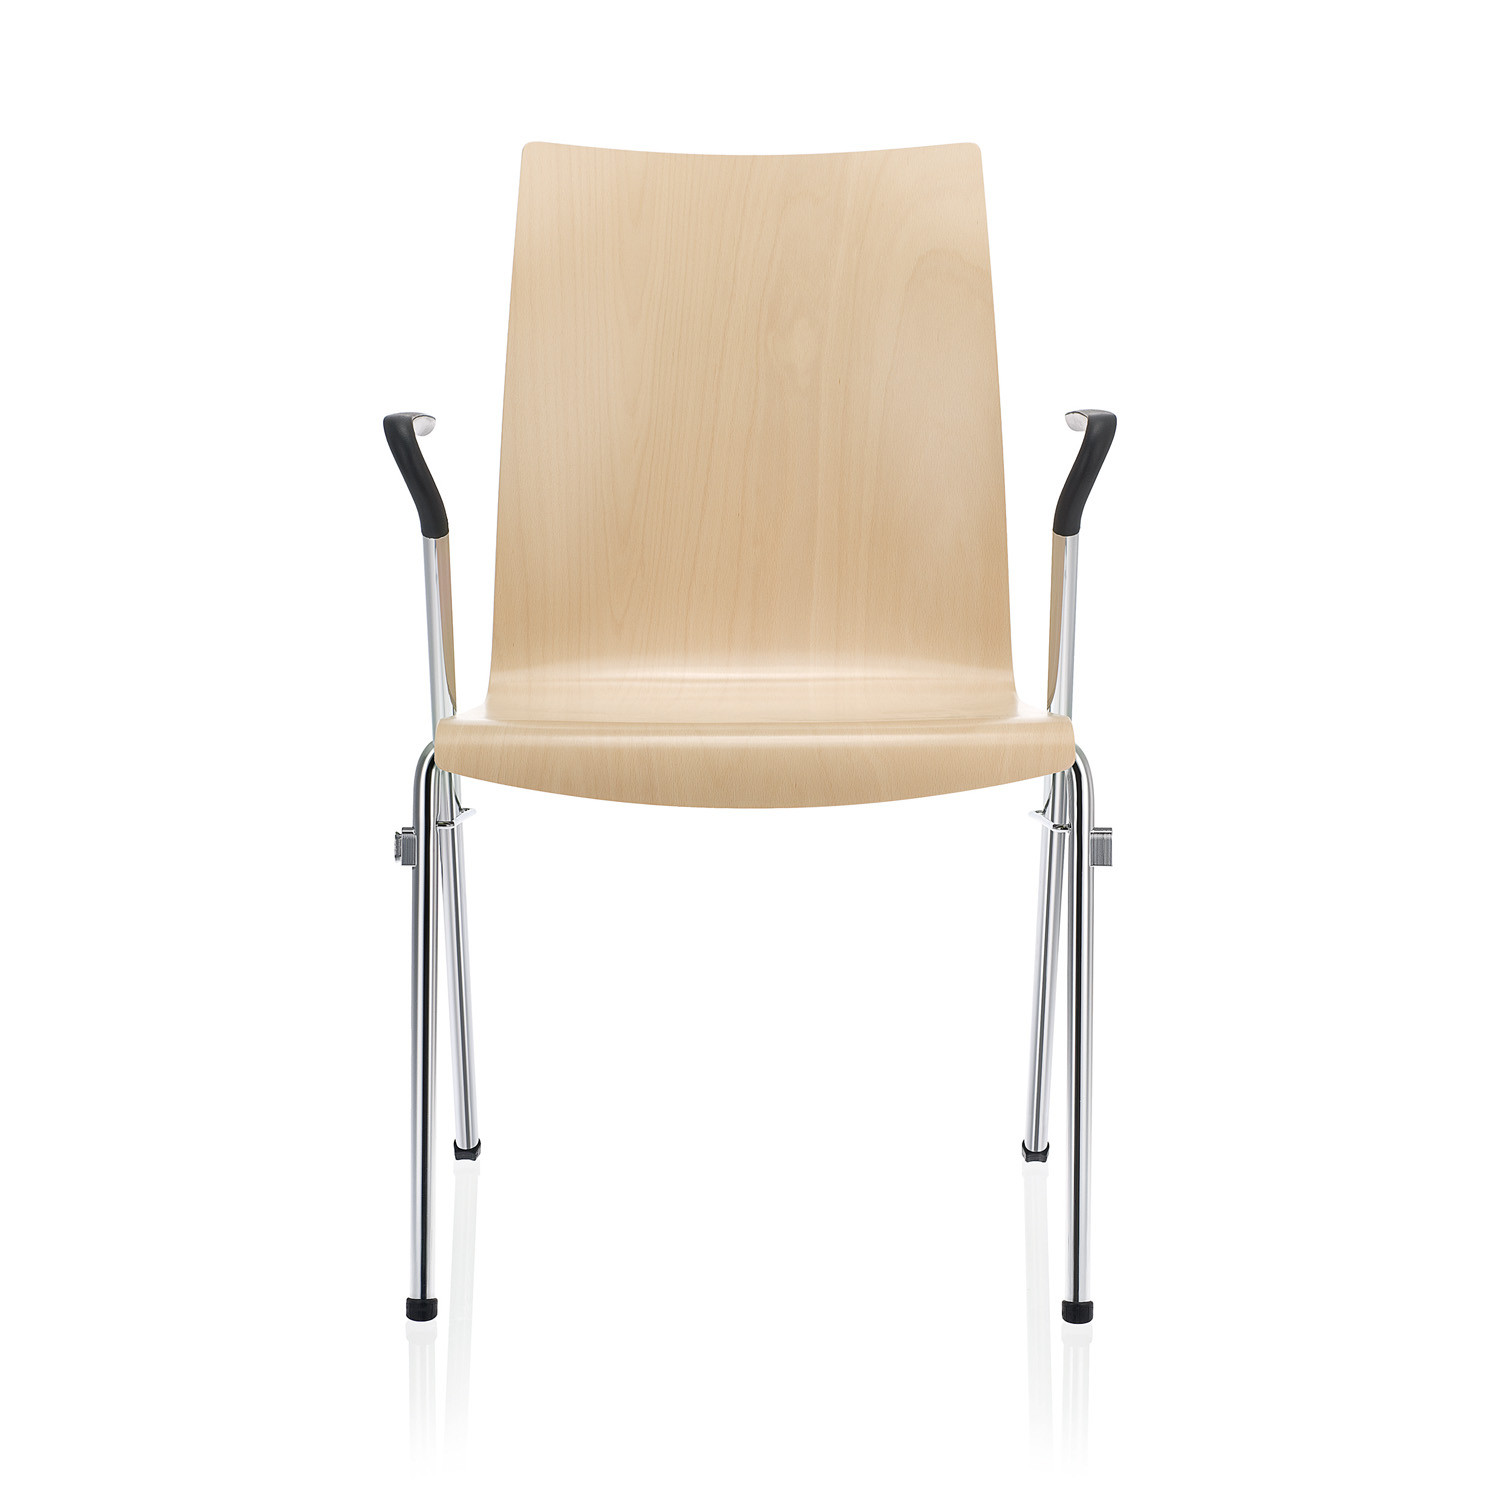 Tool 2 Chair with PUR Armrests in black